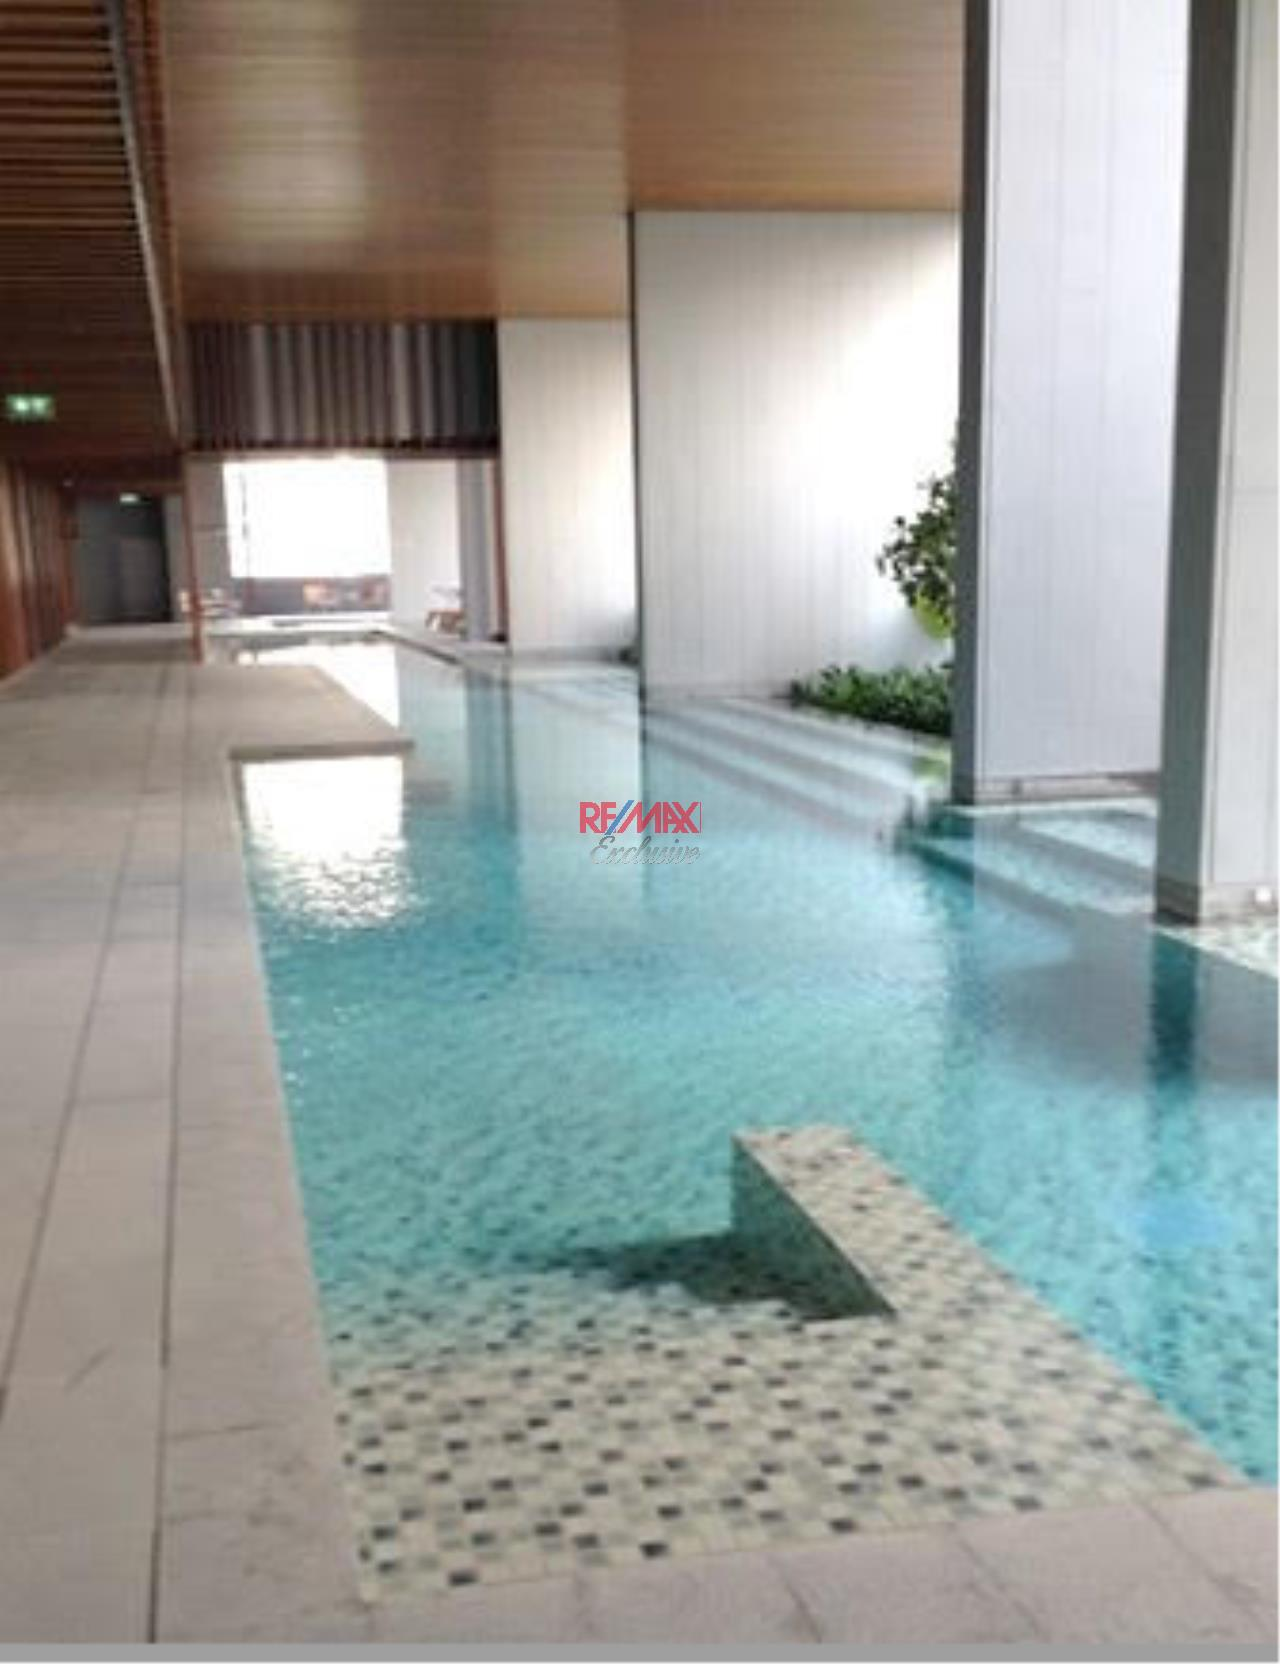 RE/MAX Exclusive Agency's Condominium in town For Rent 40,000 THB  6